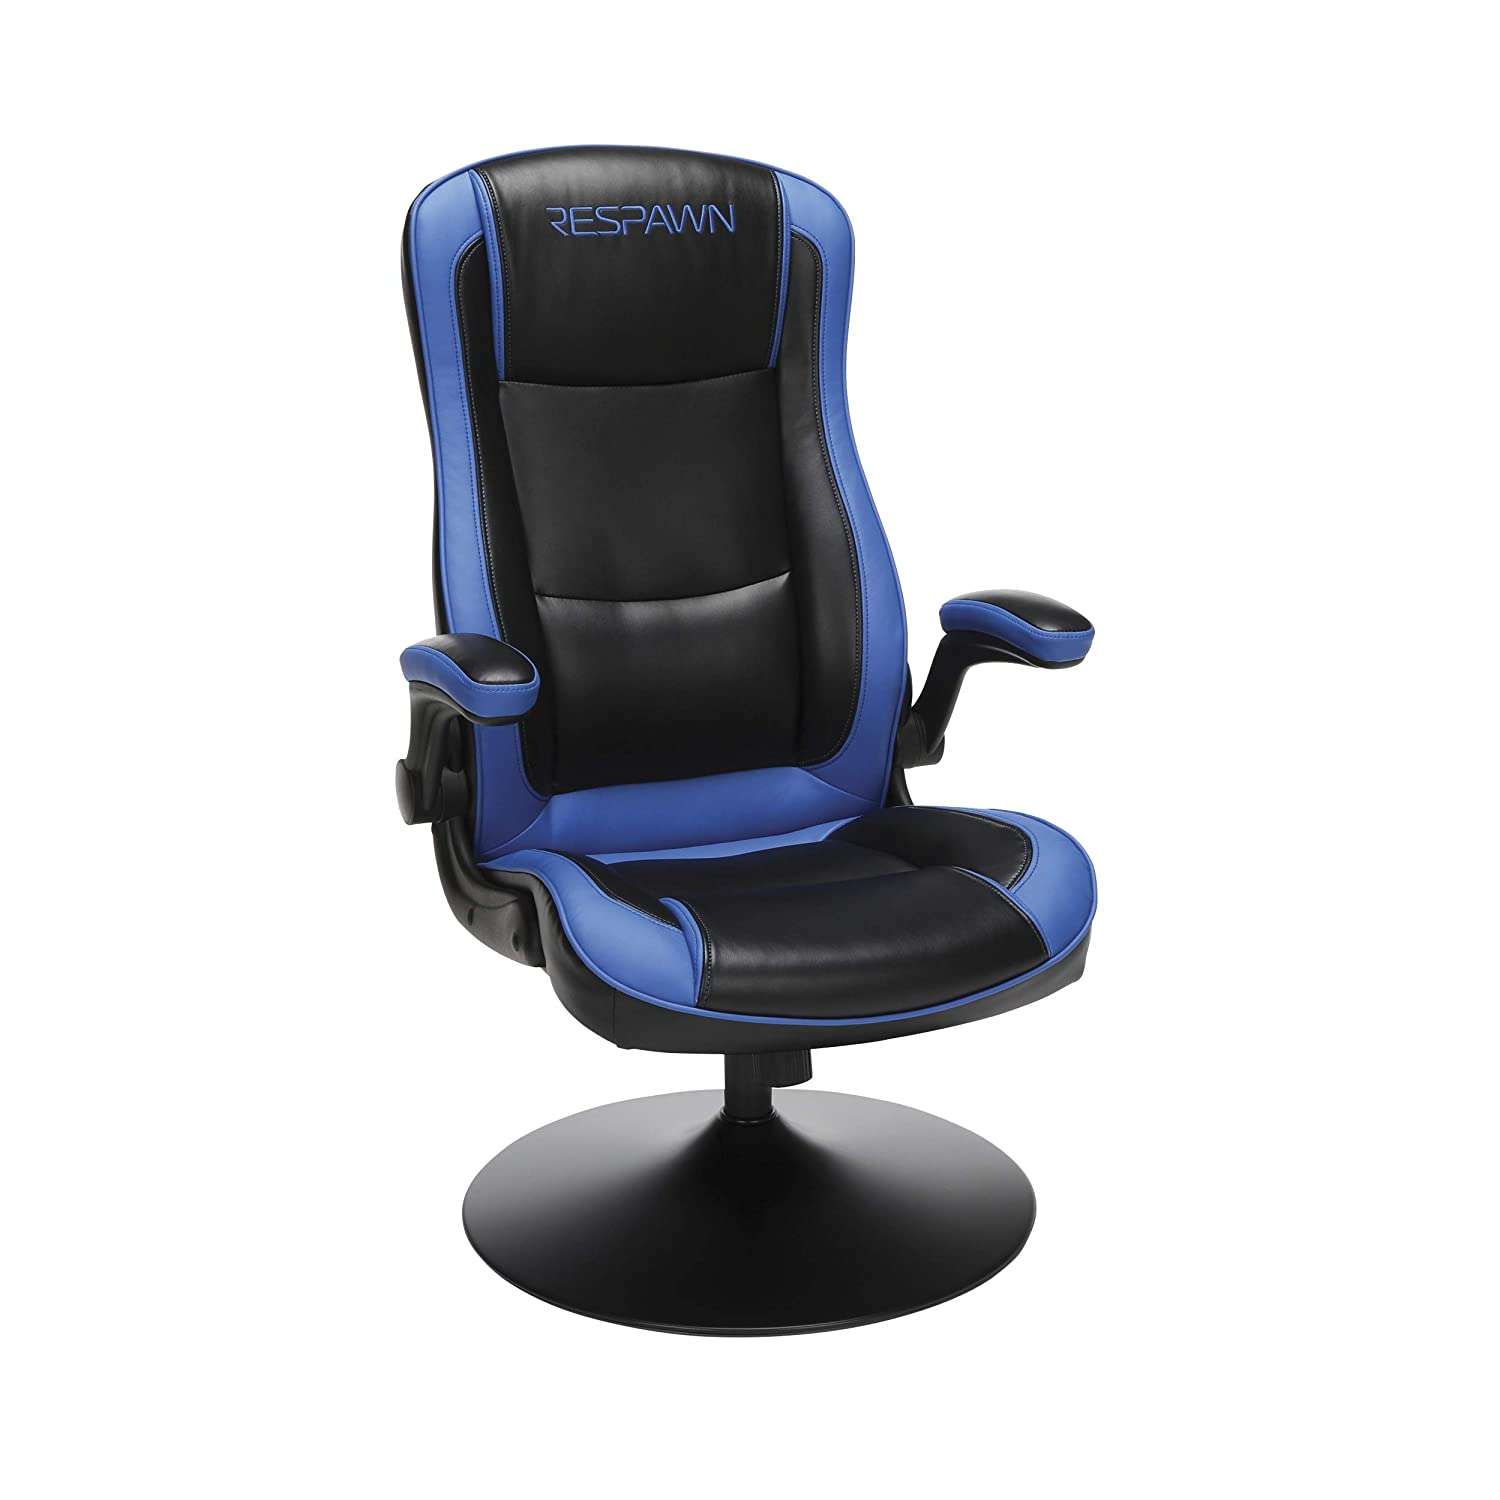 RESPAWN-800 Racing Style Gaming Rocker Chair, Rocking Gaming Chair, in Blue (RSP-800-BLK-BLU)